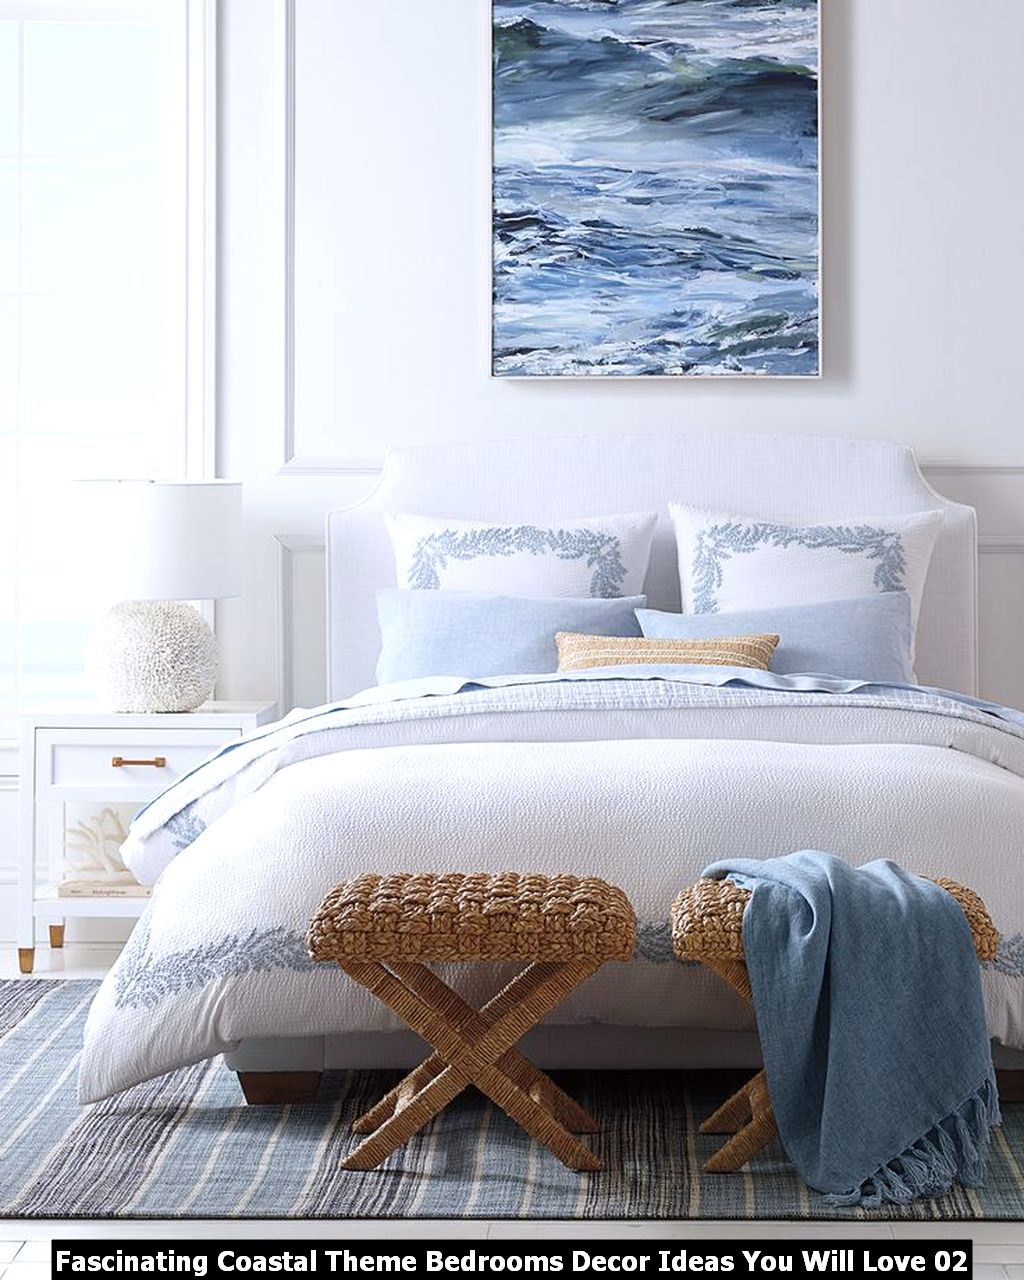 Fascinating Coastal Theme Bedrooms Decor Ideas You Will Love 02